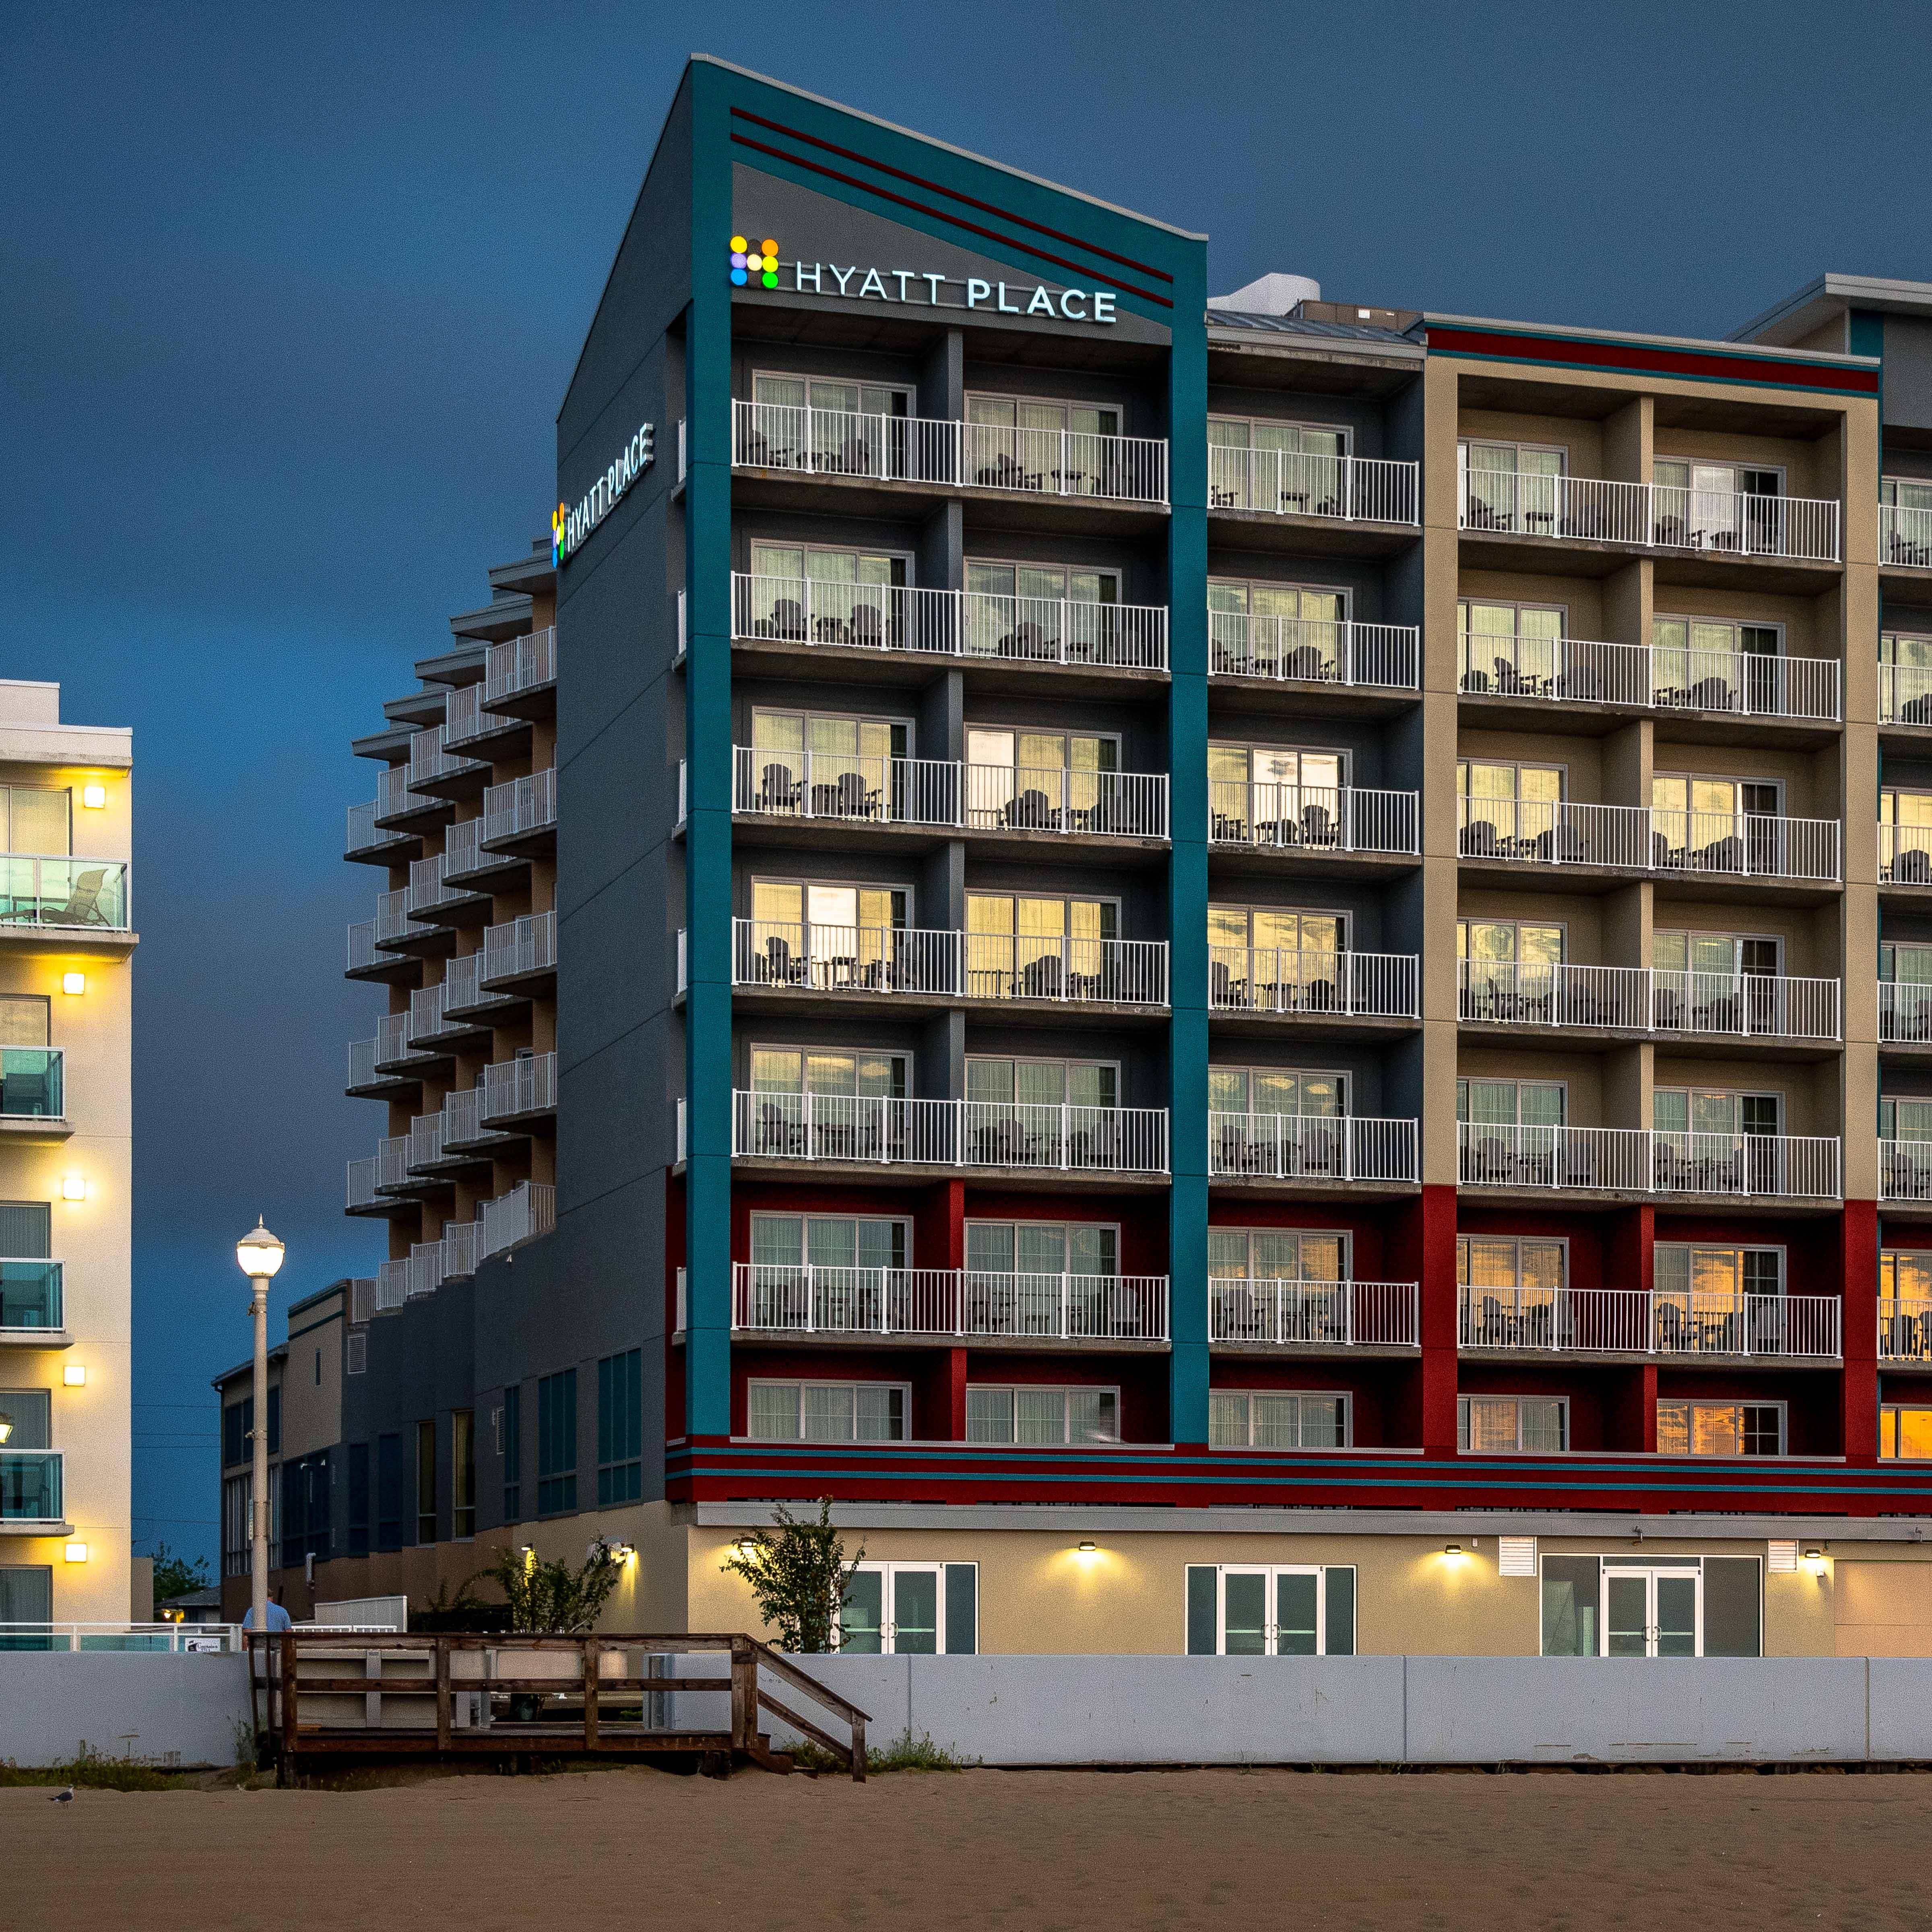 New hotel opens on Ocean City Boardwalk